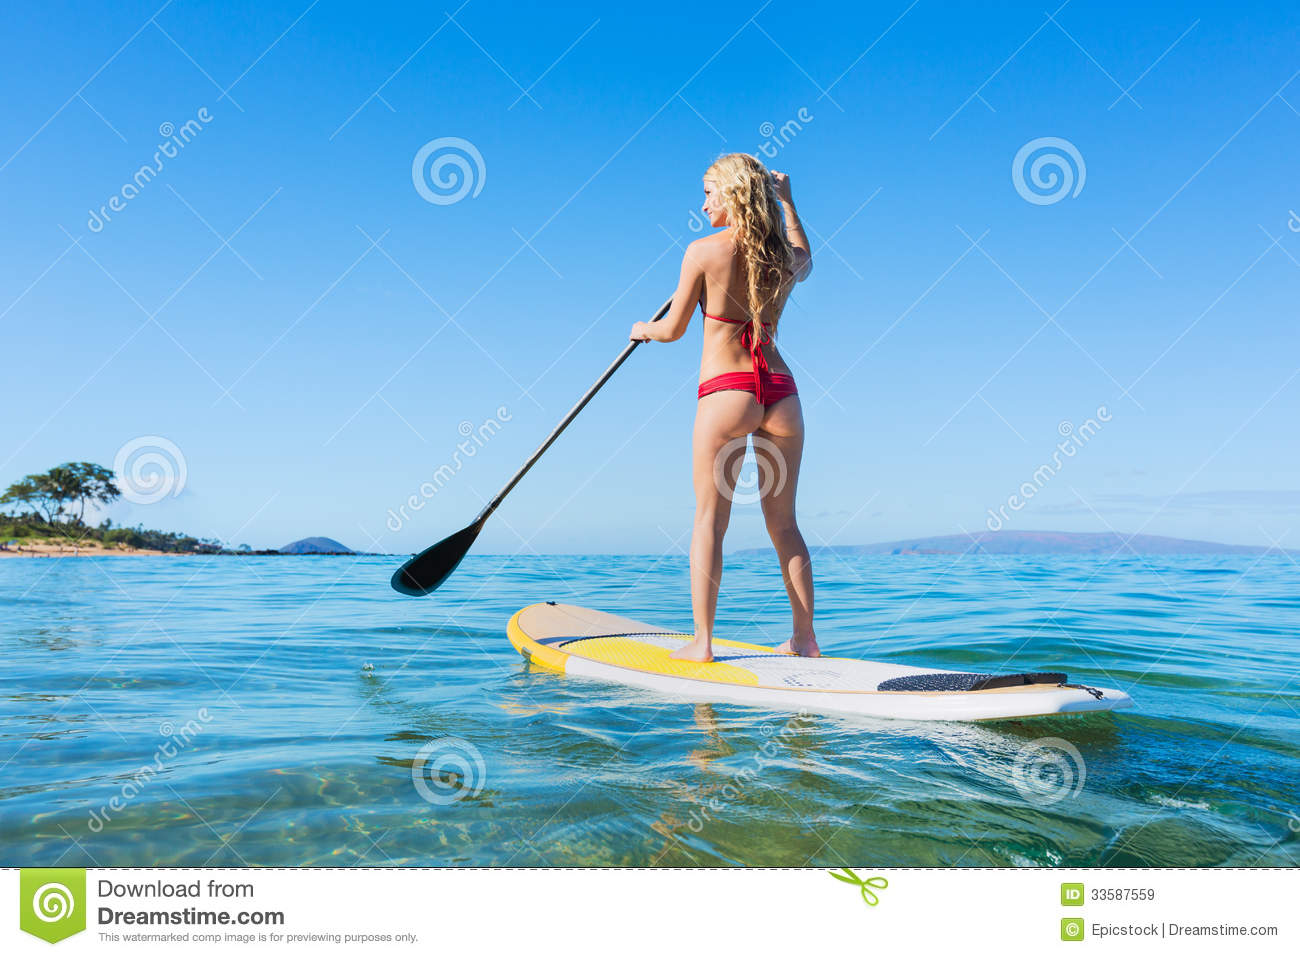 bvi map with Royalty Free Stock Images Woman Stand Up Paddle Board Young Attractive Sup Blue Waters Off Hawaii Active Life Concept Image33587559 on Virgin Islands U S Map as well Road Town moreover Pd2 location map besides Caribisch Gebied additionally Sir francis drake channel.